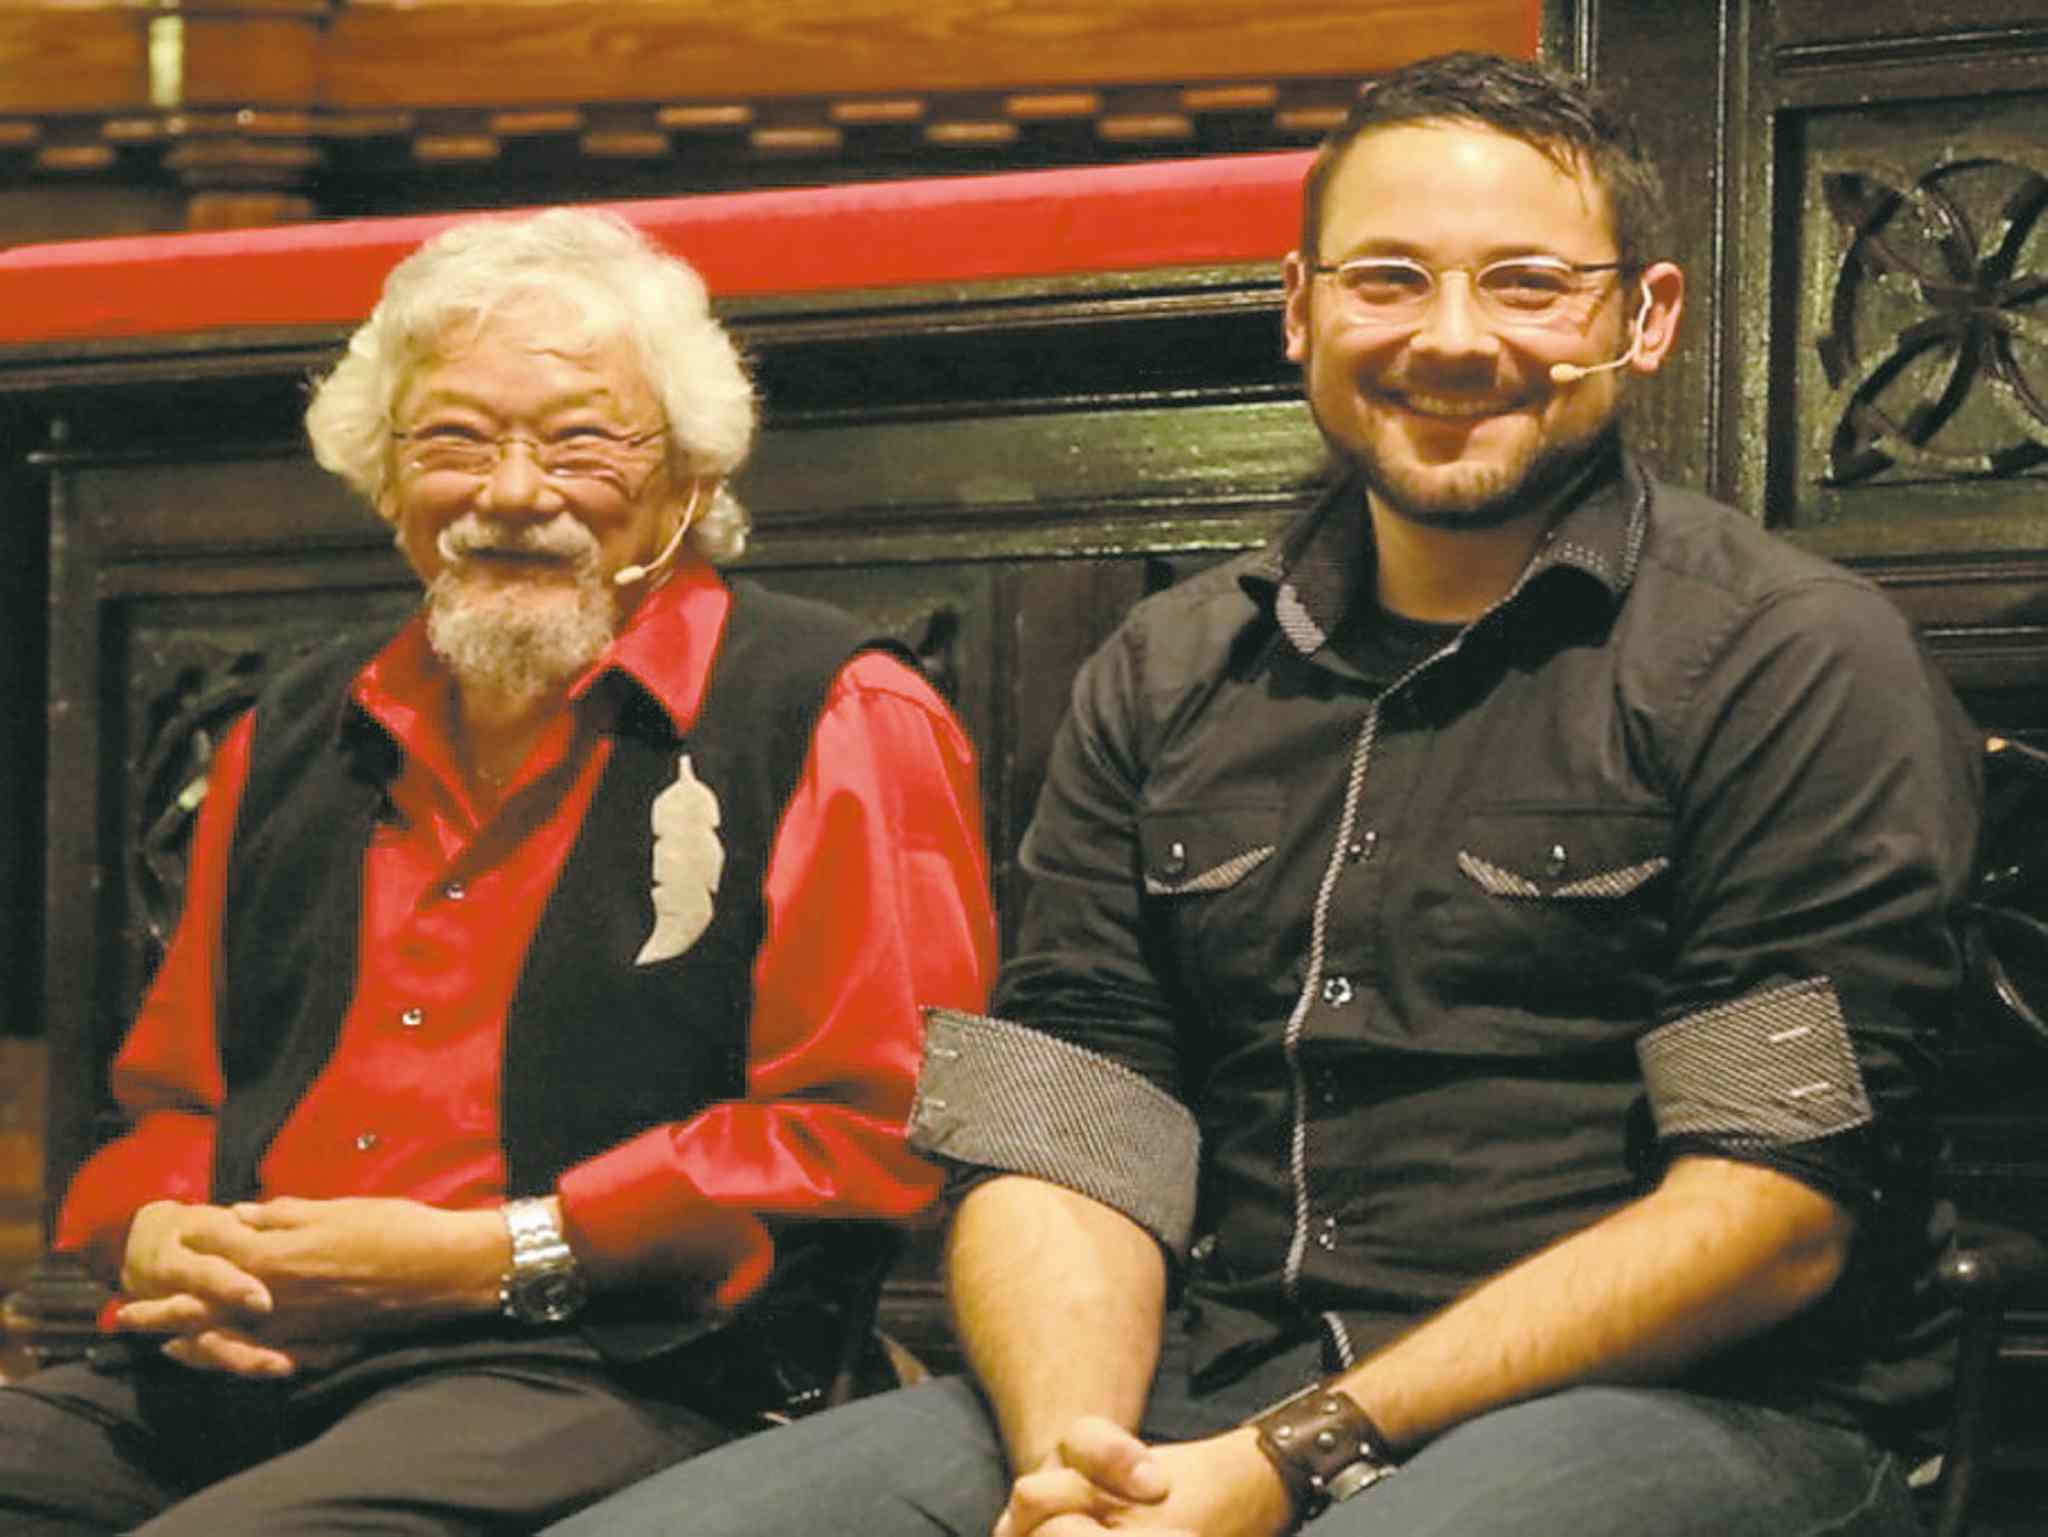 David Suzuki (left) and Ian Mauro are collaborating  on a documentary dealing with the impact of climate change in British Columbia (far right).